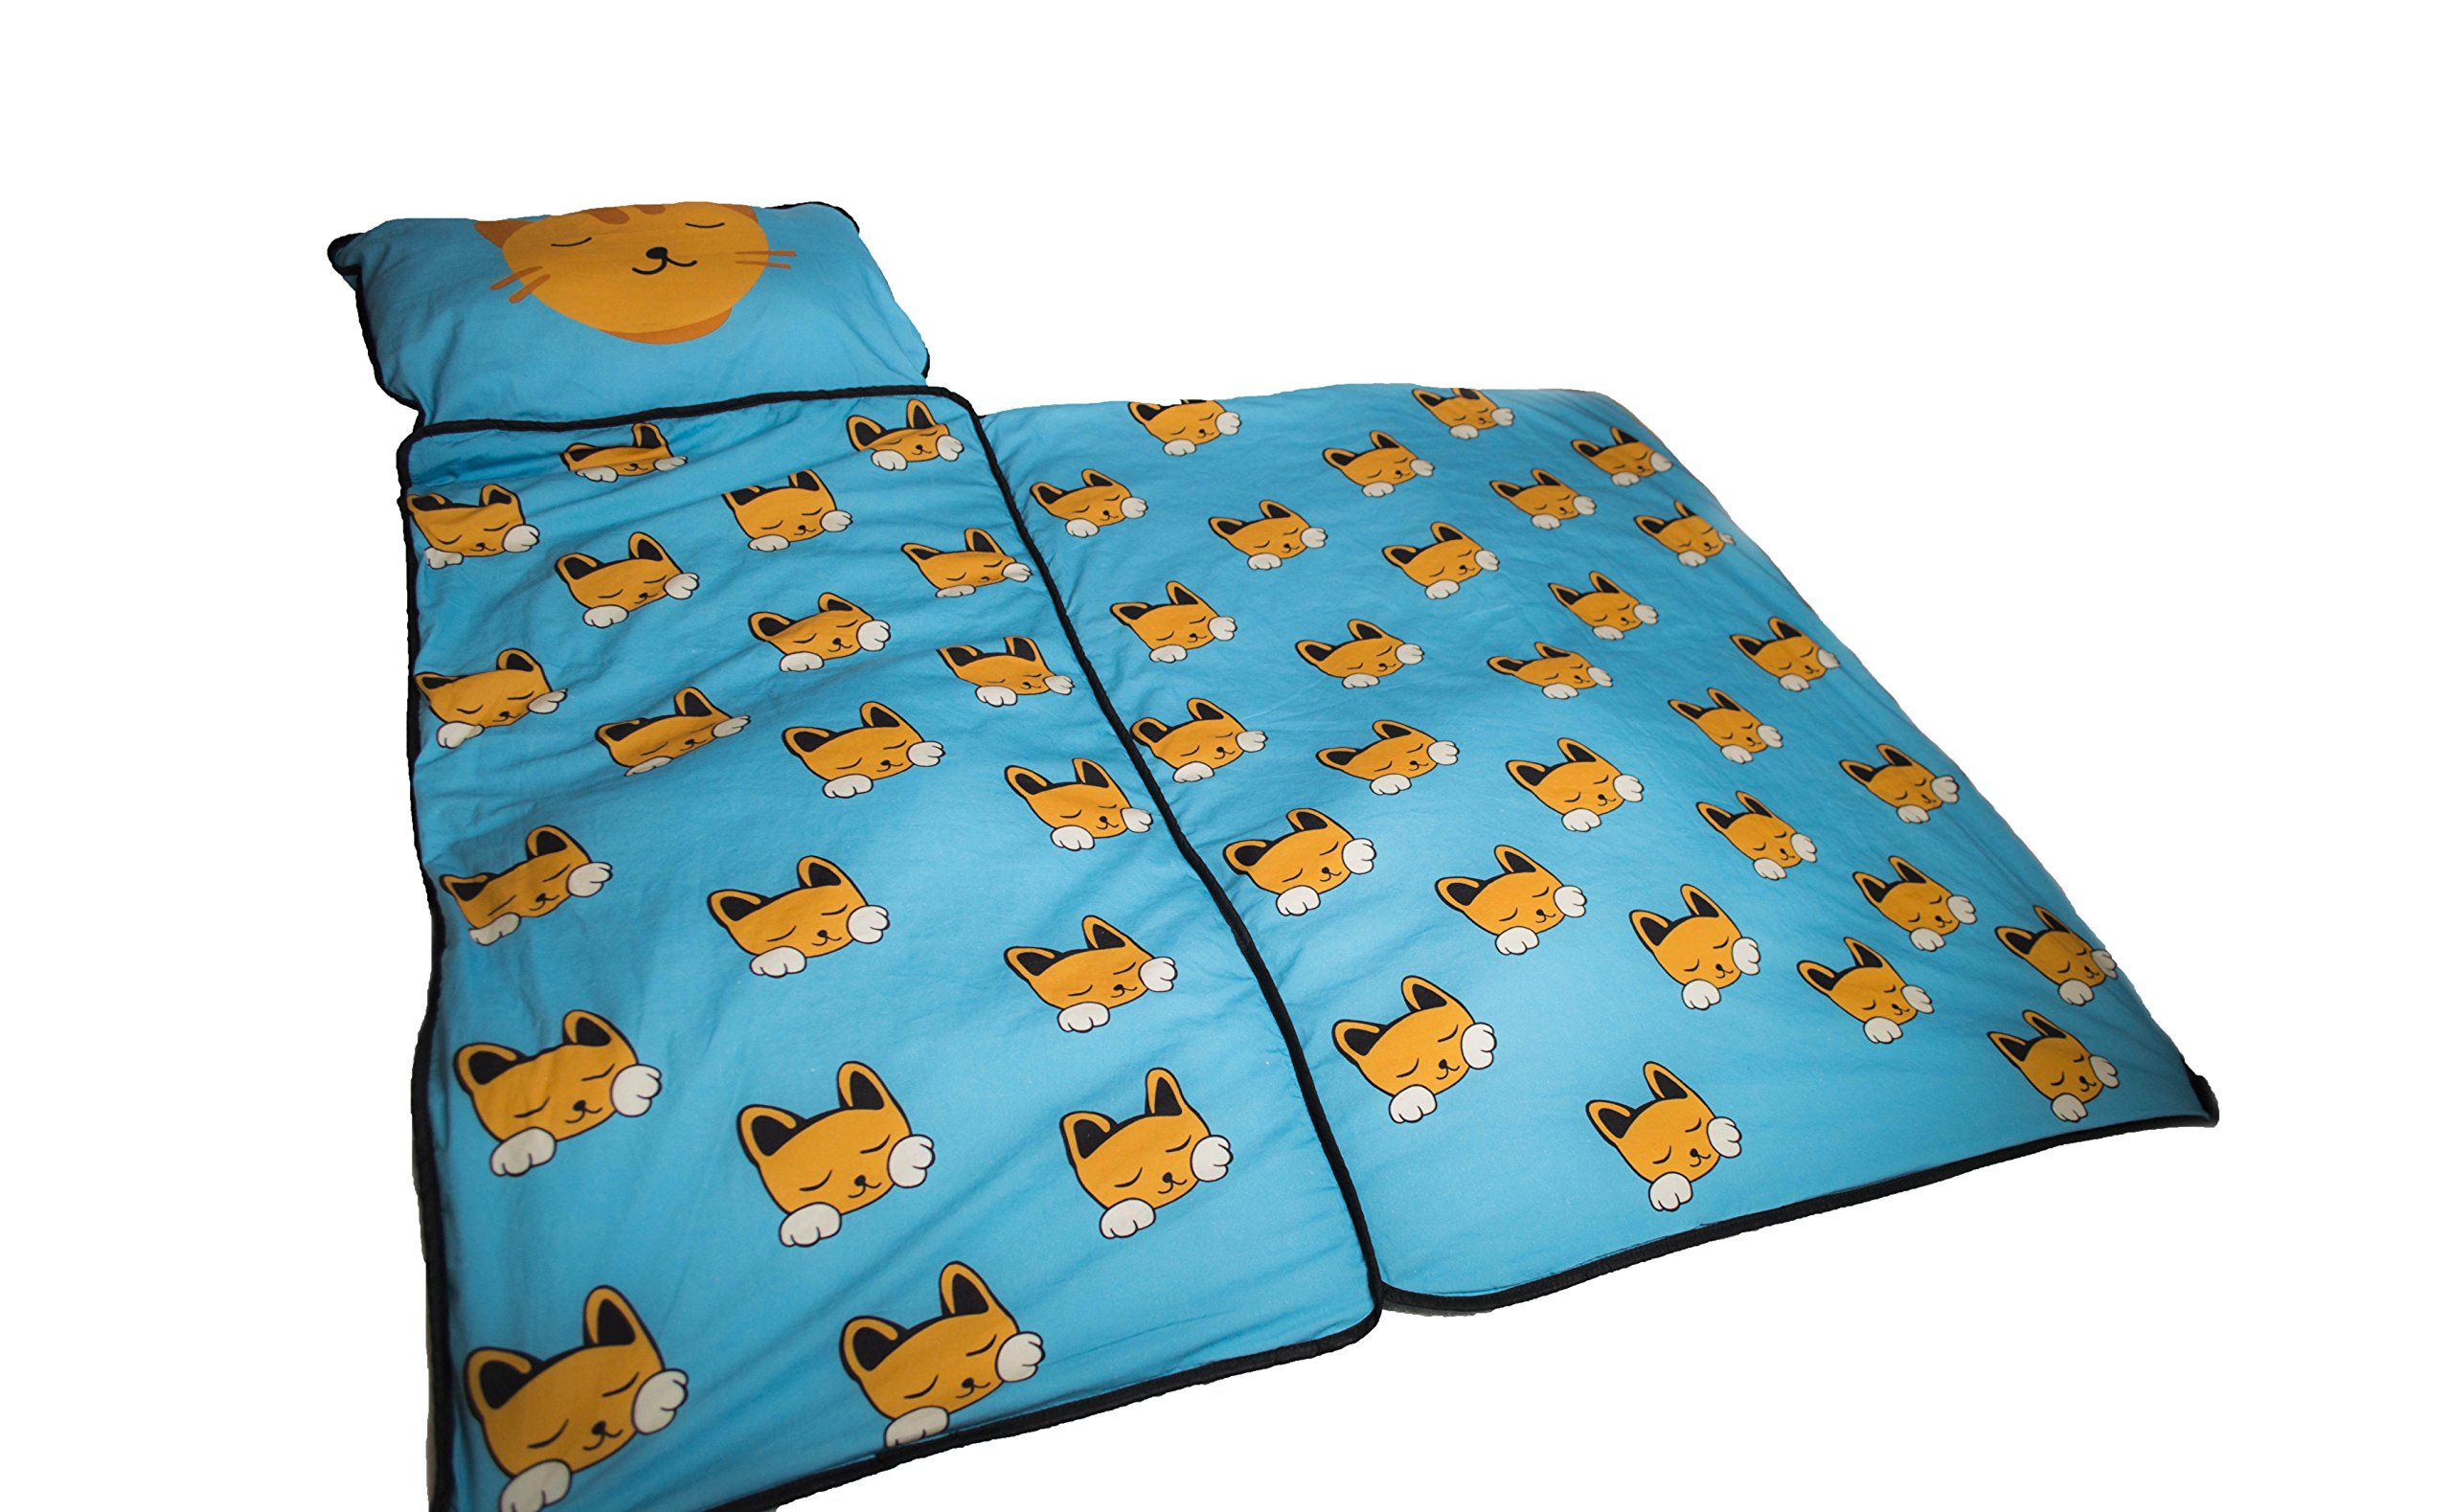 Cat Nap Mat For Toddlers Indoor Outdoor Mat Ocean Blue Built In Blanket For Babies And Toddlers Read More At The Image Link Th Cat Nap Nap Mat Cat Door